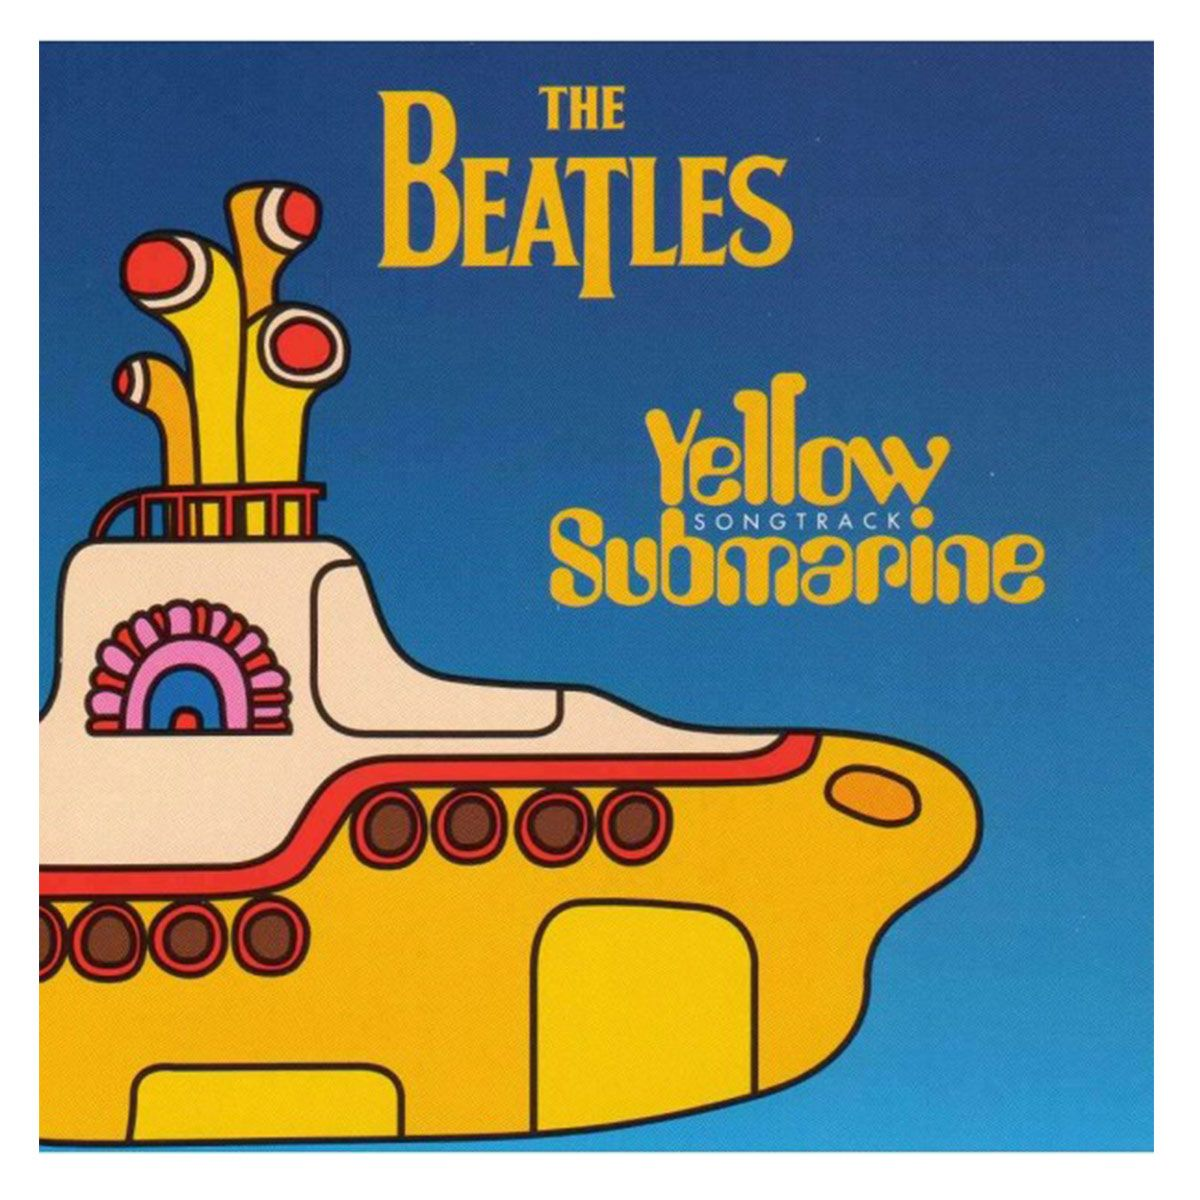 LP The Beatles - Yellow Submarine Songtrack